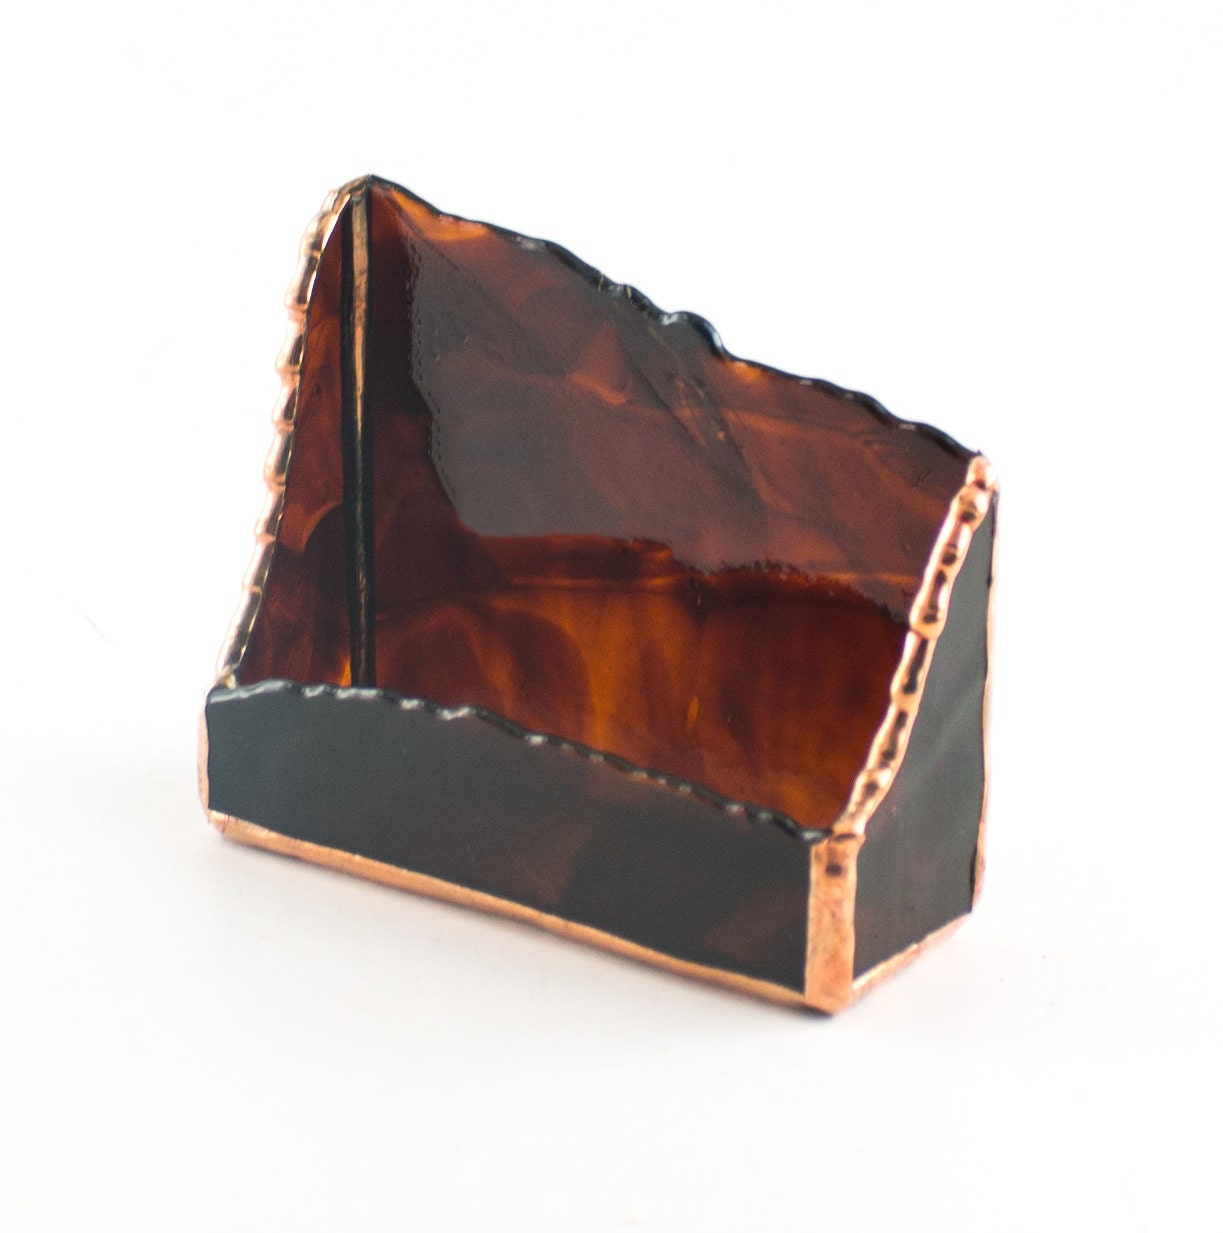 Unique business card holder modern desk accessories stained for Unusual business card holders